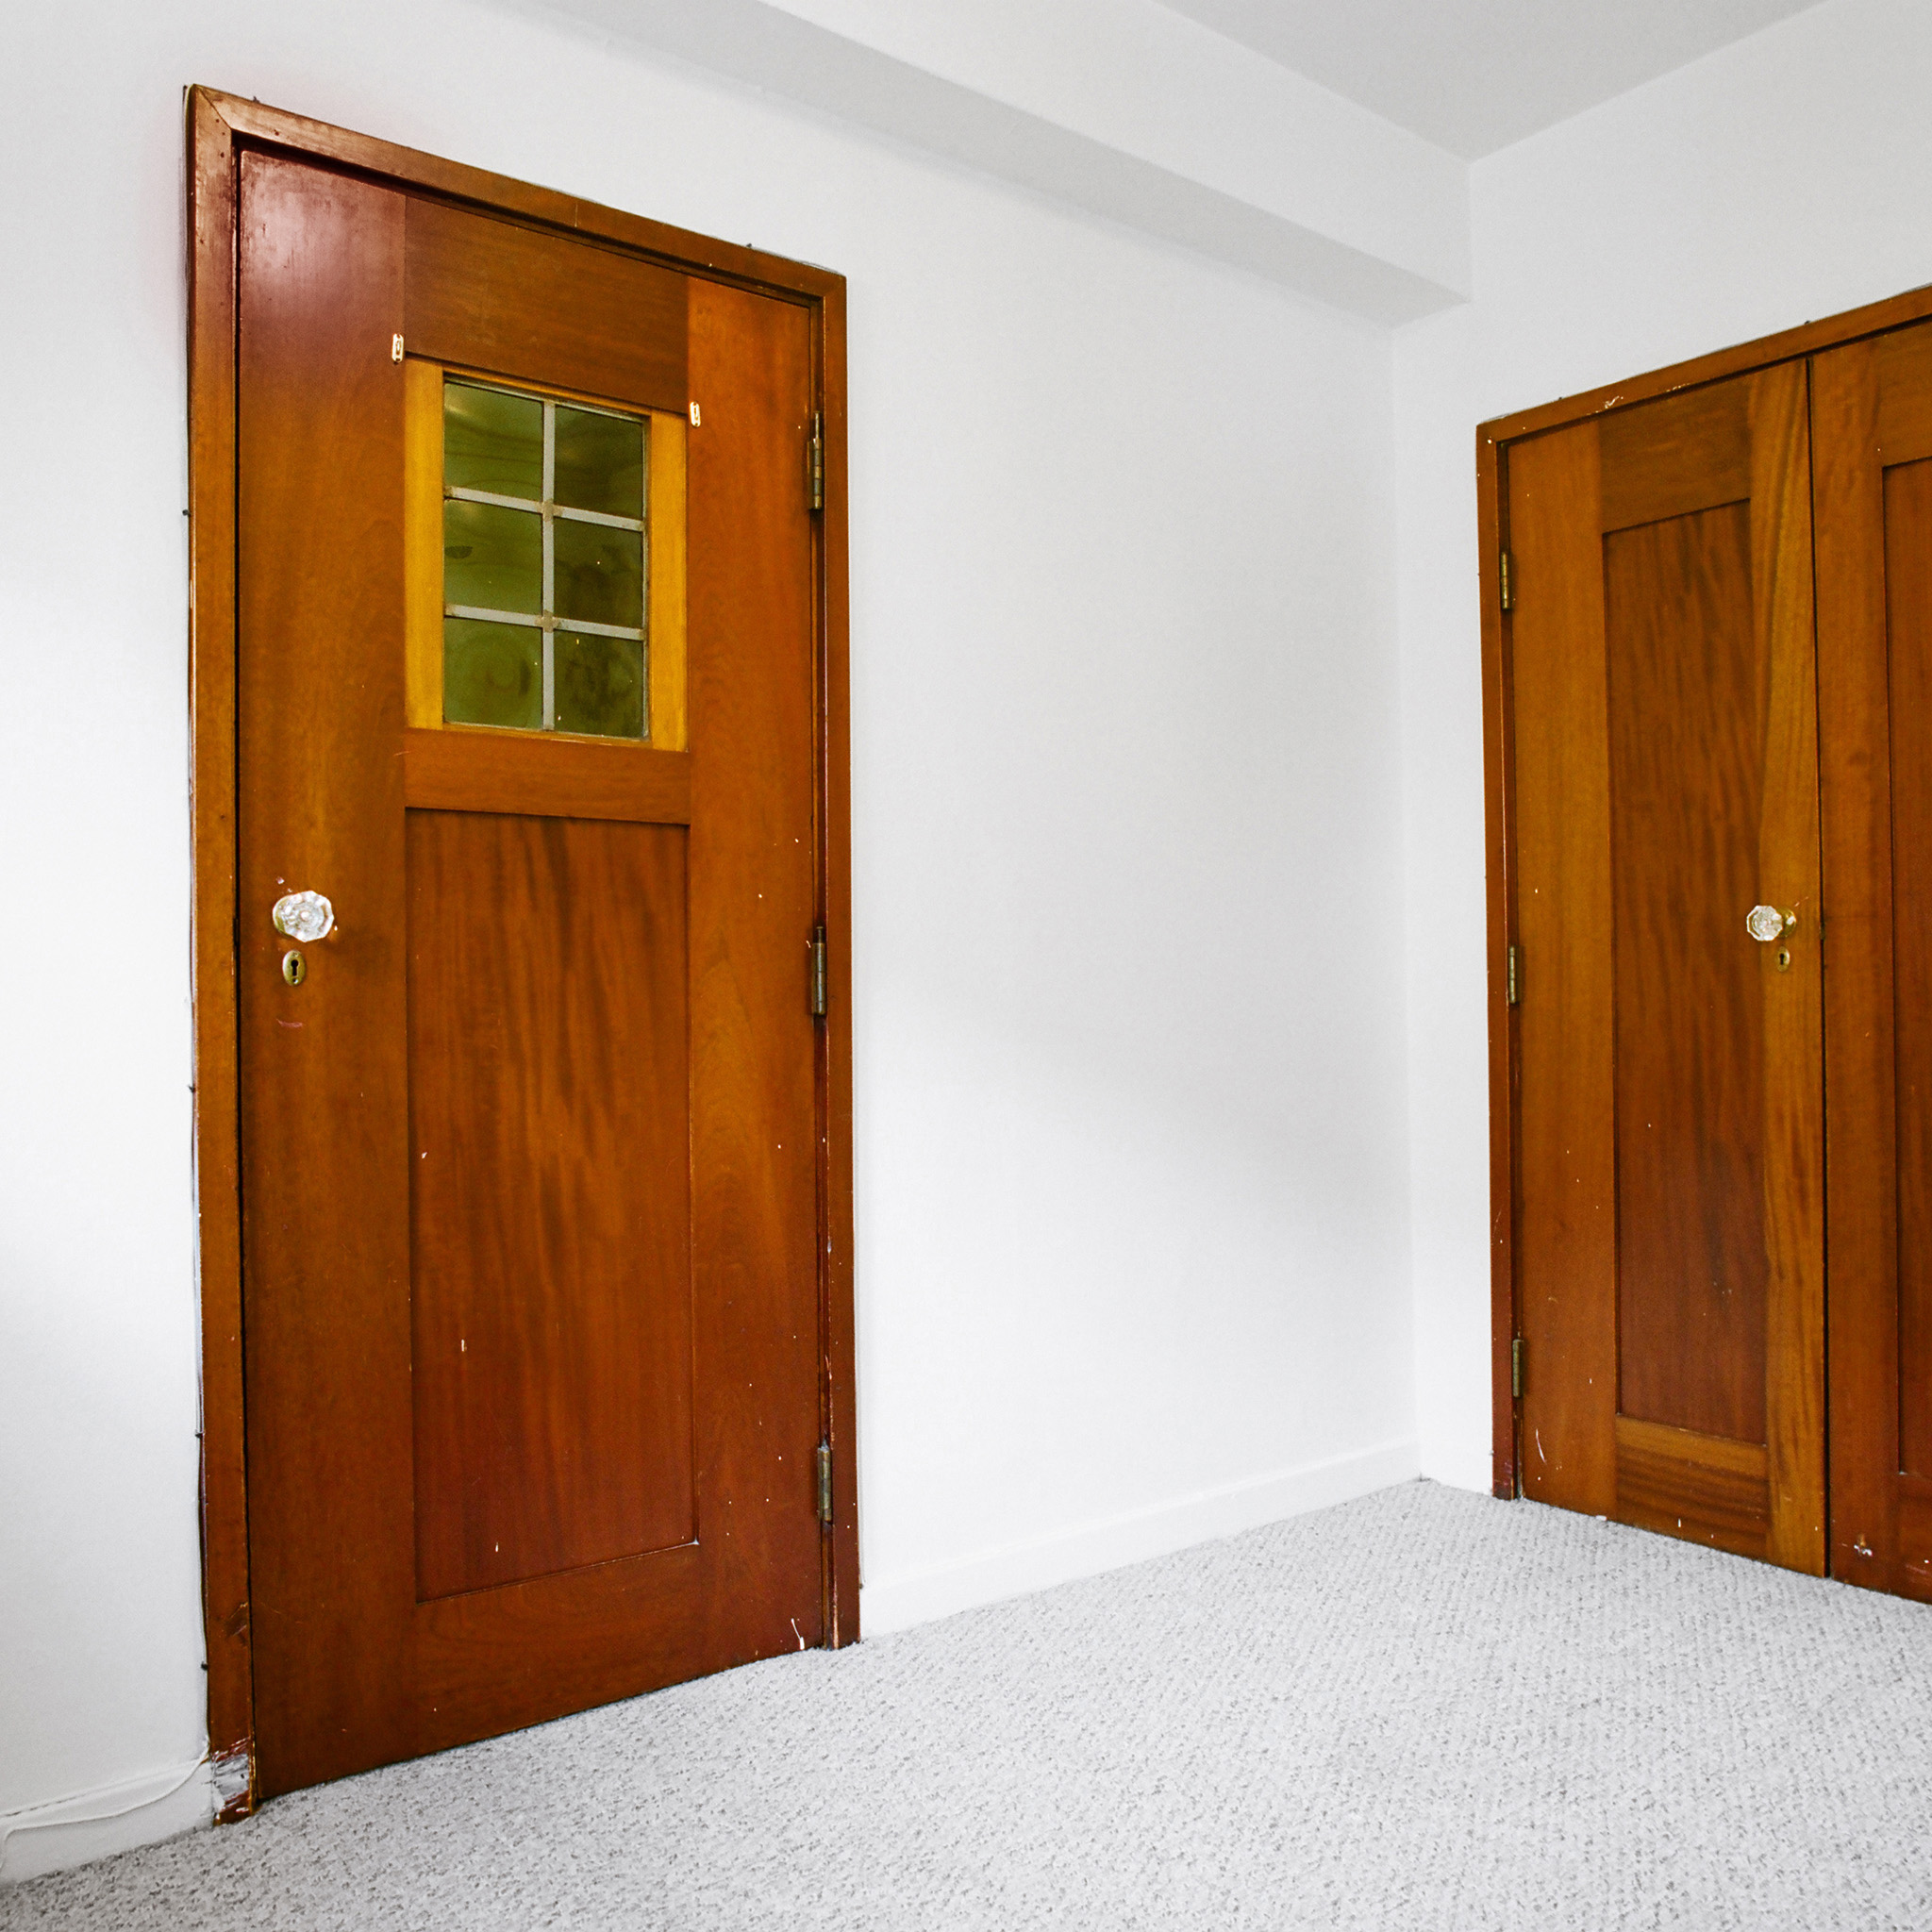 interior of 342 S. Highland Ave, Apt. 16A 3